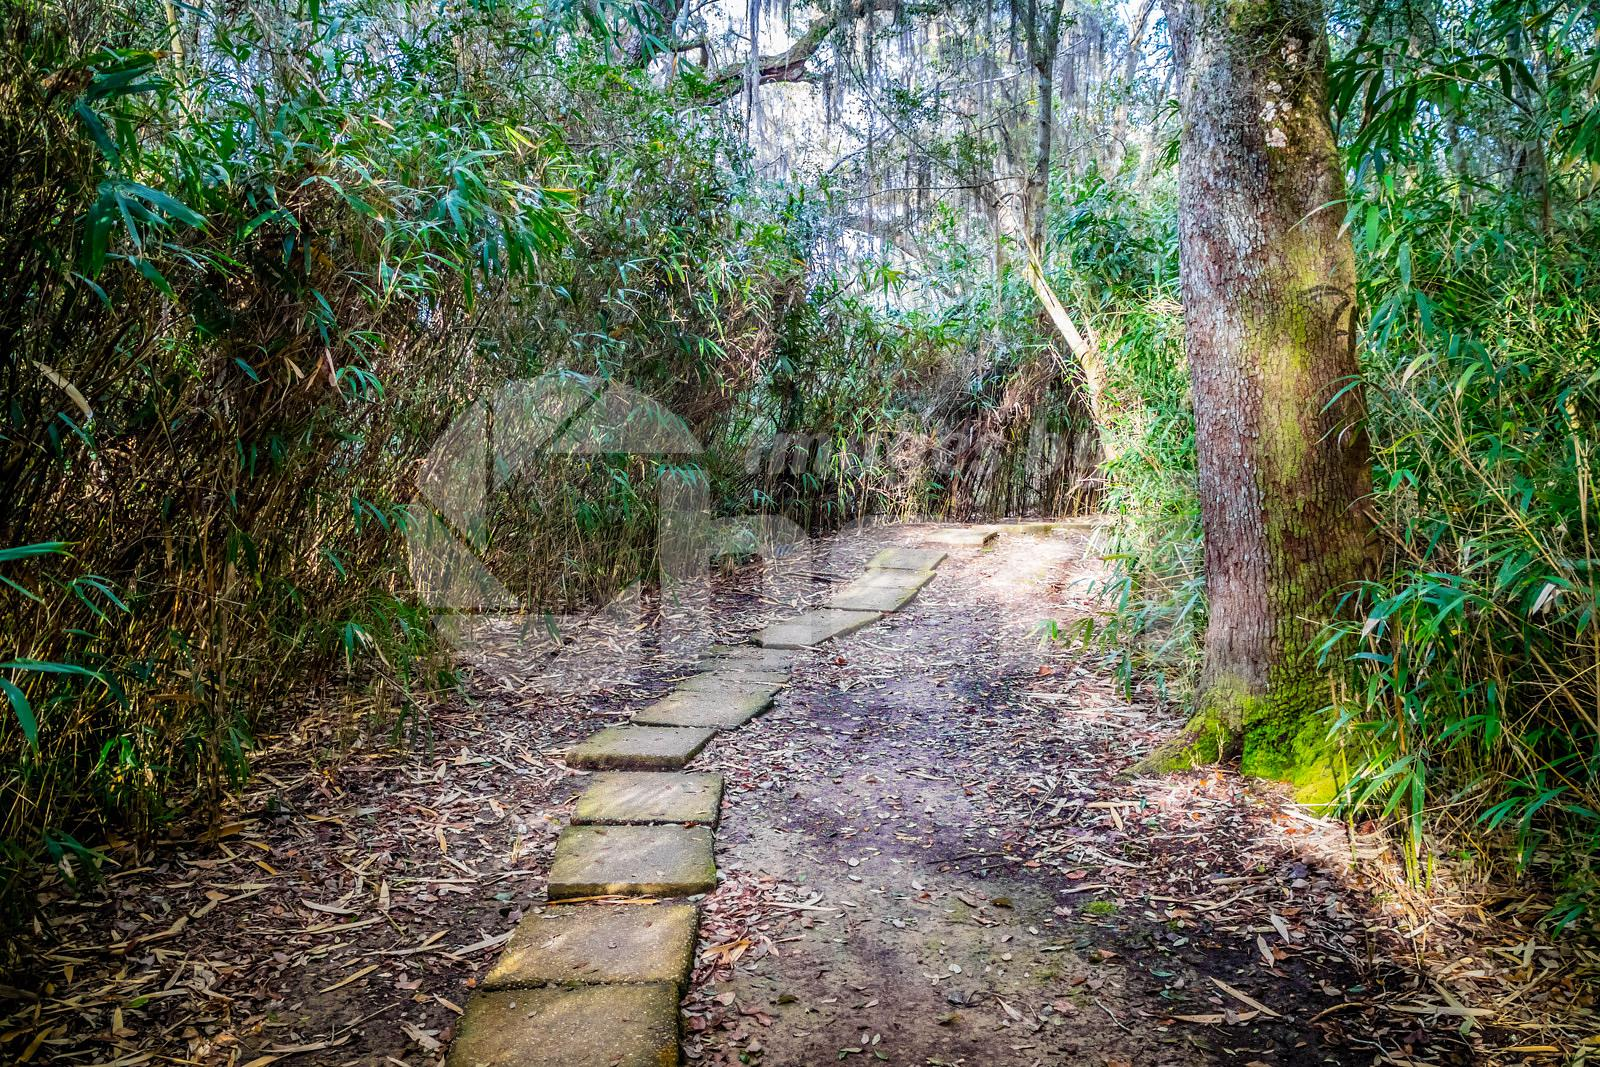 A forest trail with the sun shining through the foliage in Avery Island, Louisiana